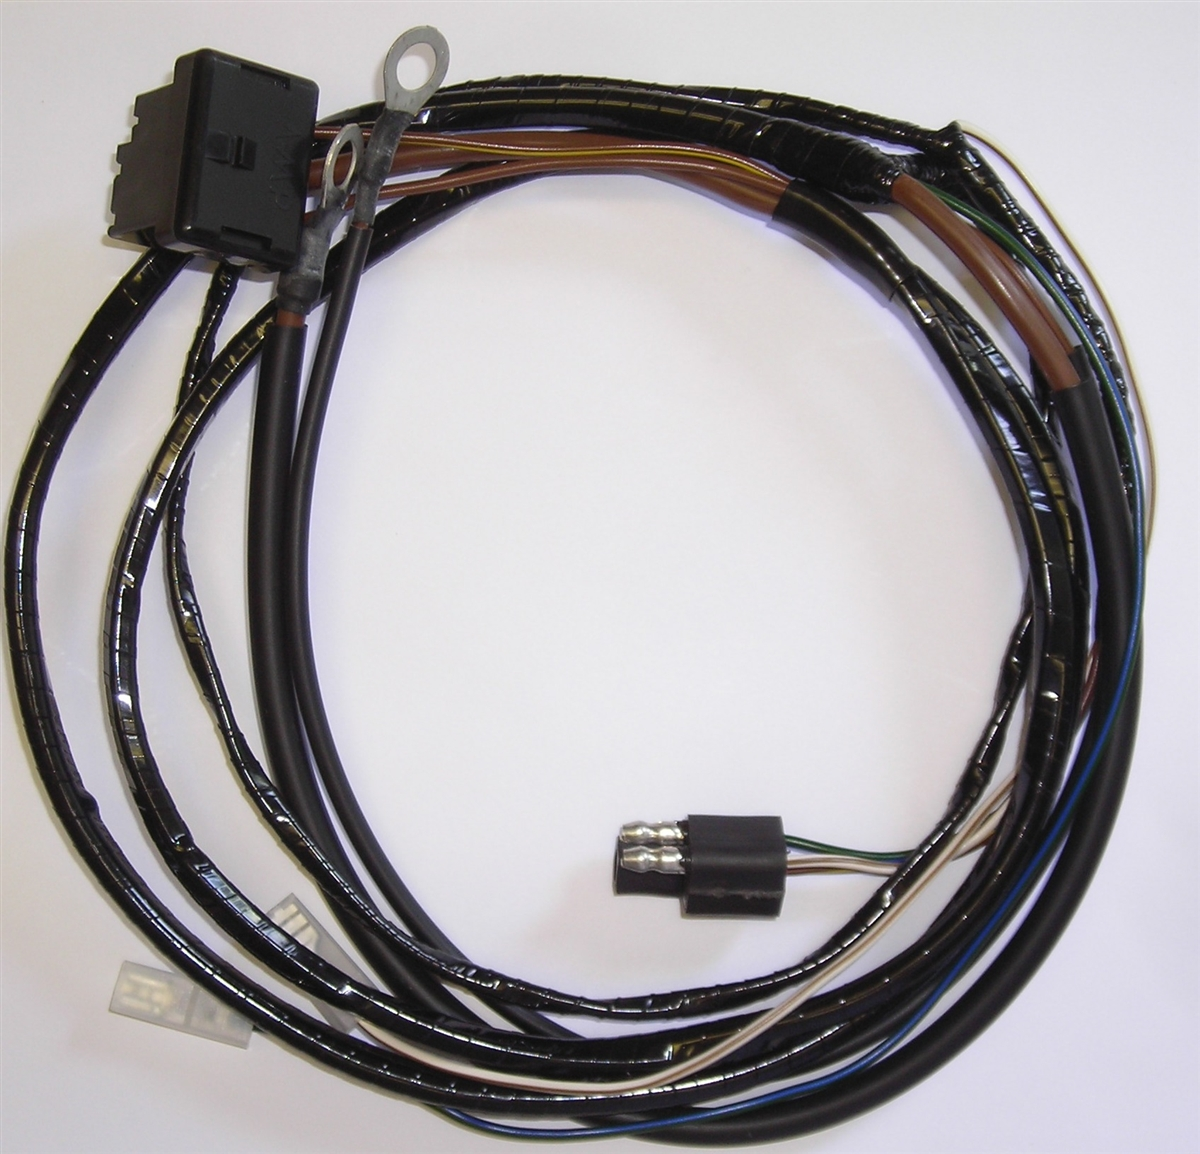 LR333 2?1402649052 rover diesel engine wiring harness land rover wiring harness at virtualis.co